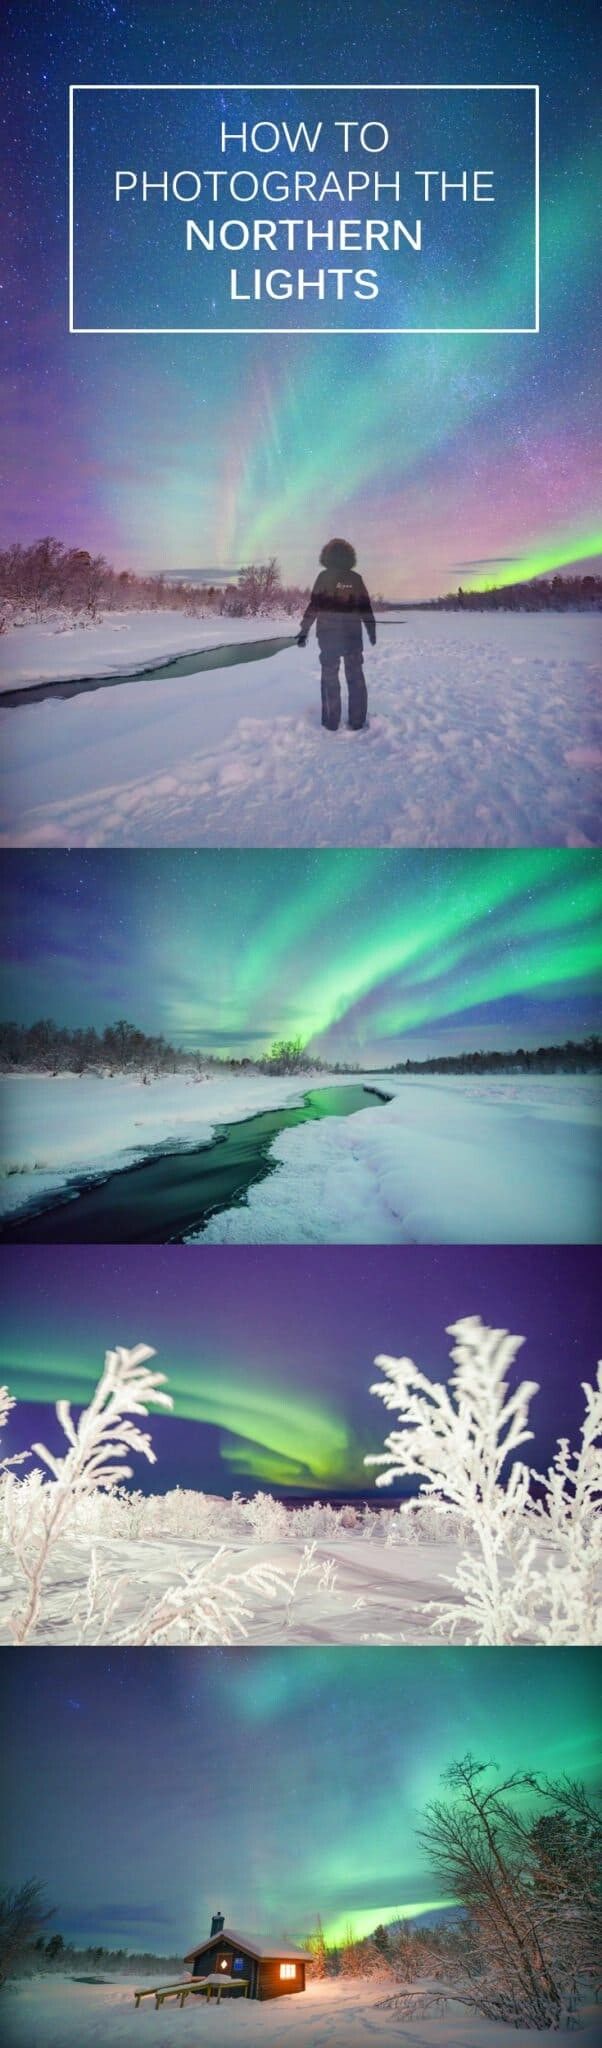 How To Photograph The Northern Lights by professional photography, Lisa Michele Burns of The Wandering Lens